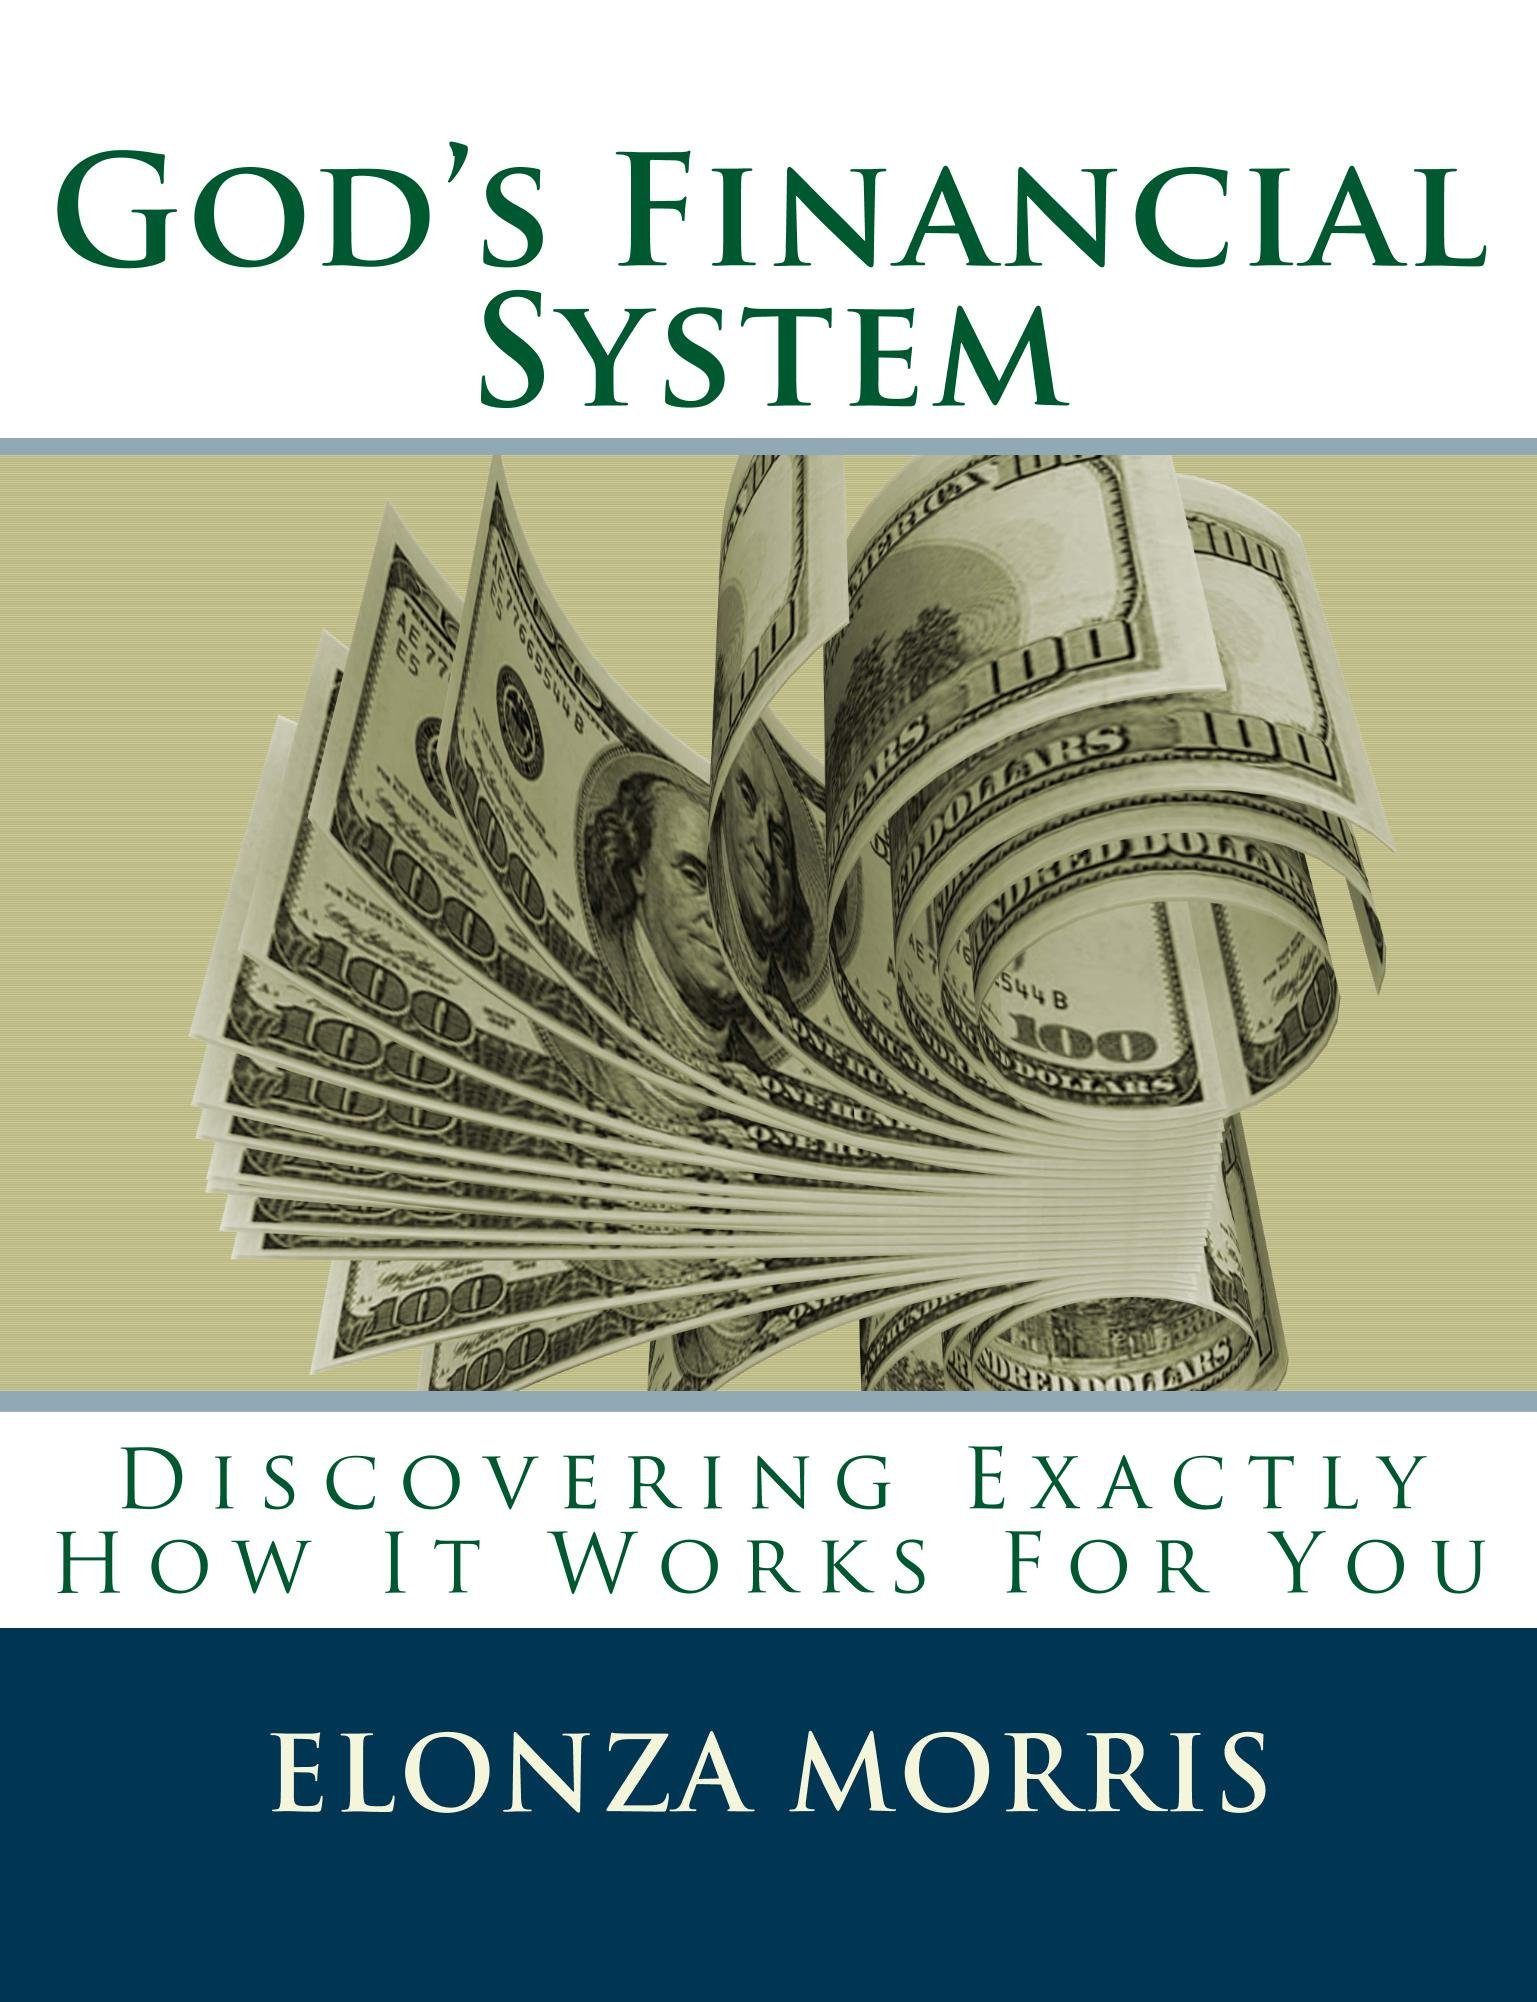 God's Financial System: Discovering Exactly How It Works For You